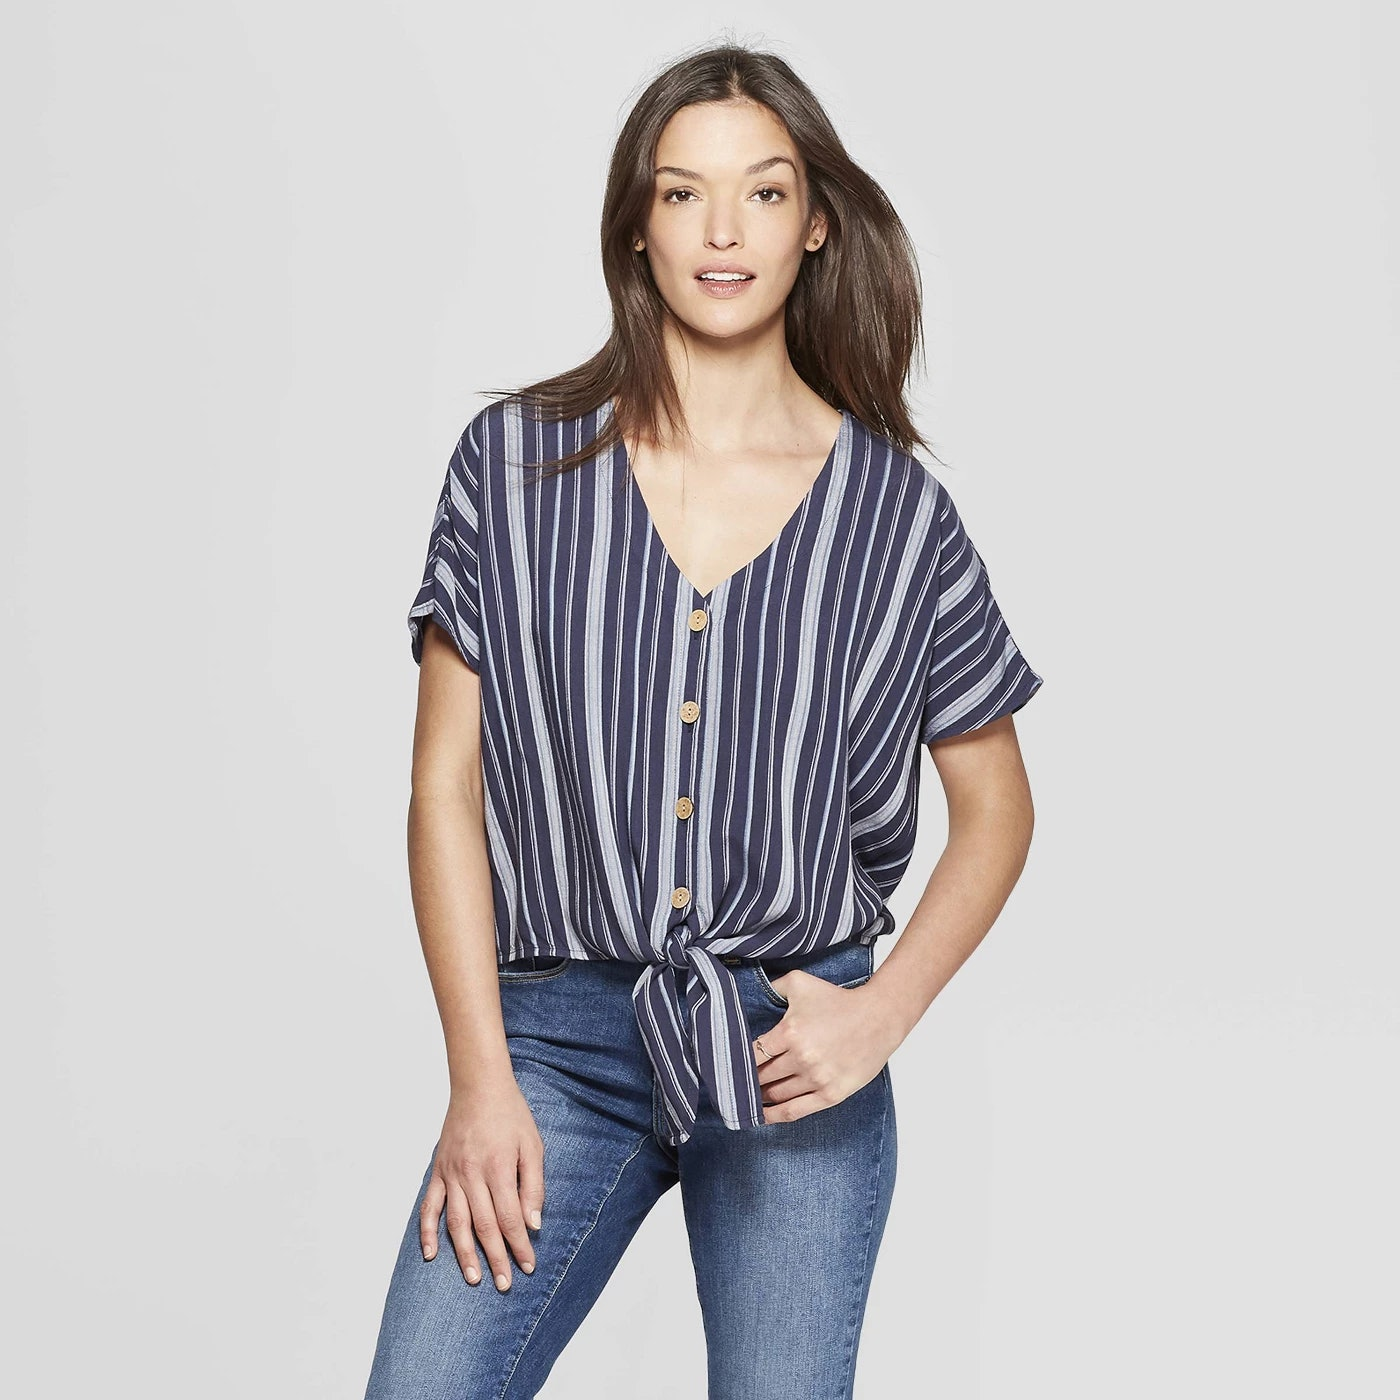 3372d3837bd Target s New Spring Clothing Line Just Launched   Most Items Are Under  40